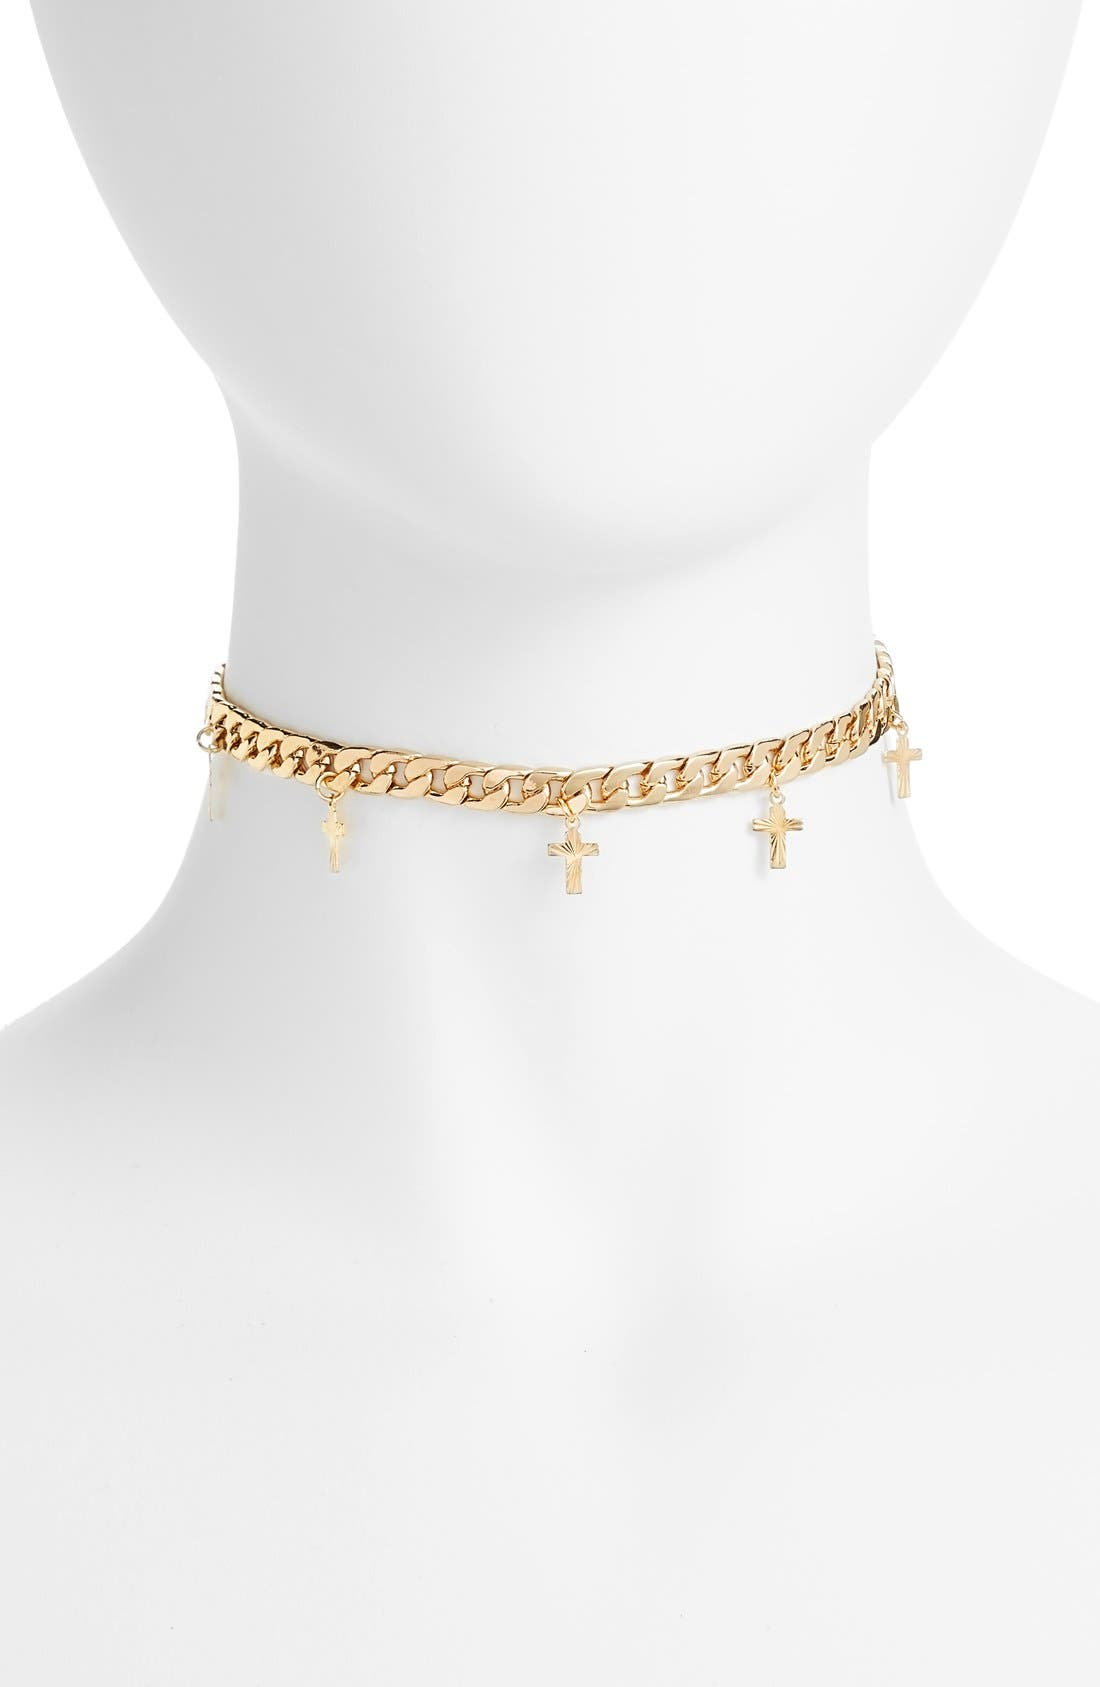 Alternate Image 1 Selected - Frasier Sterling Topanga Cross Charm Choker